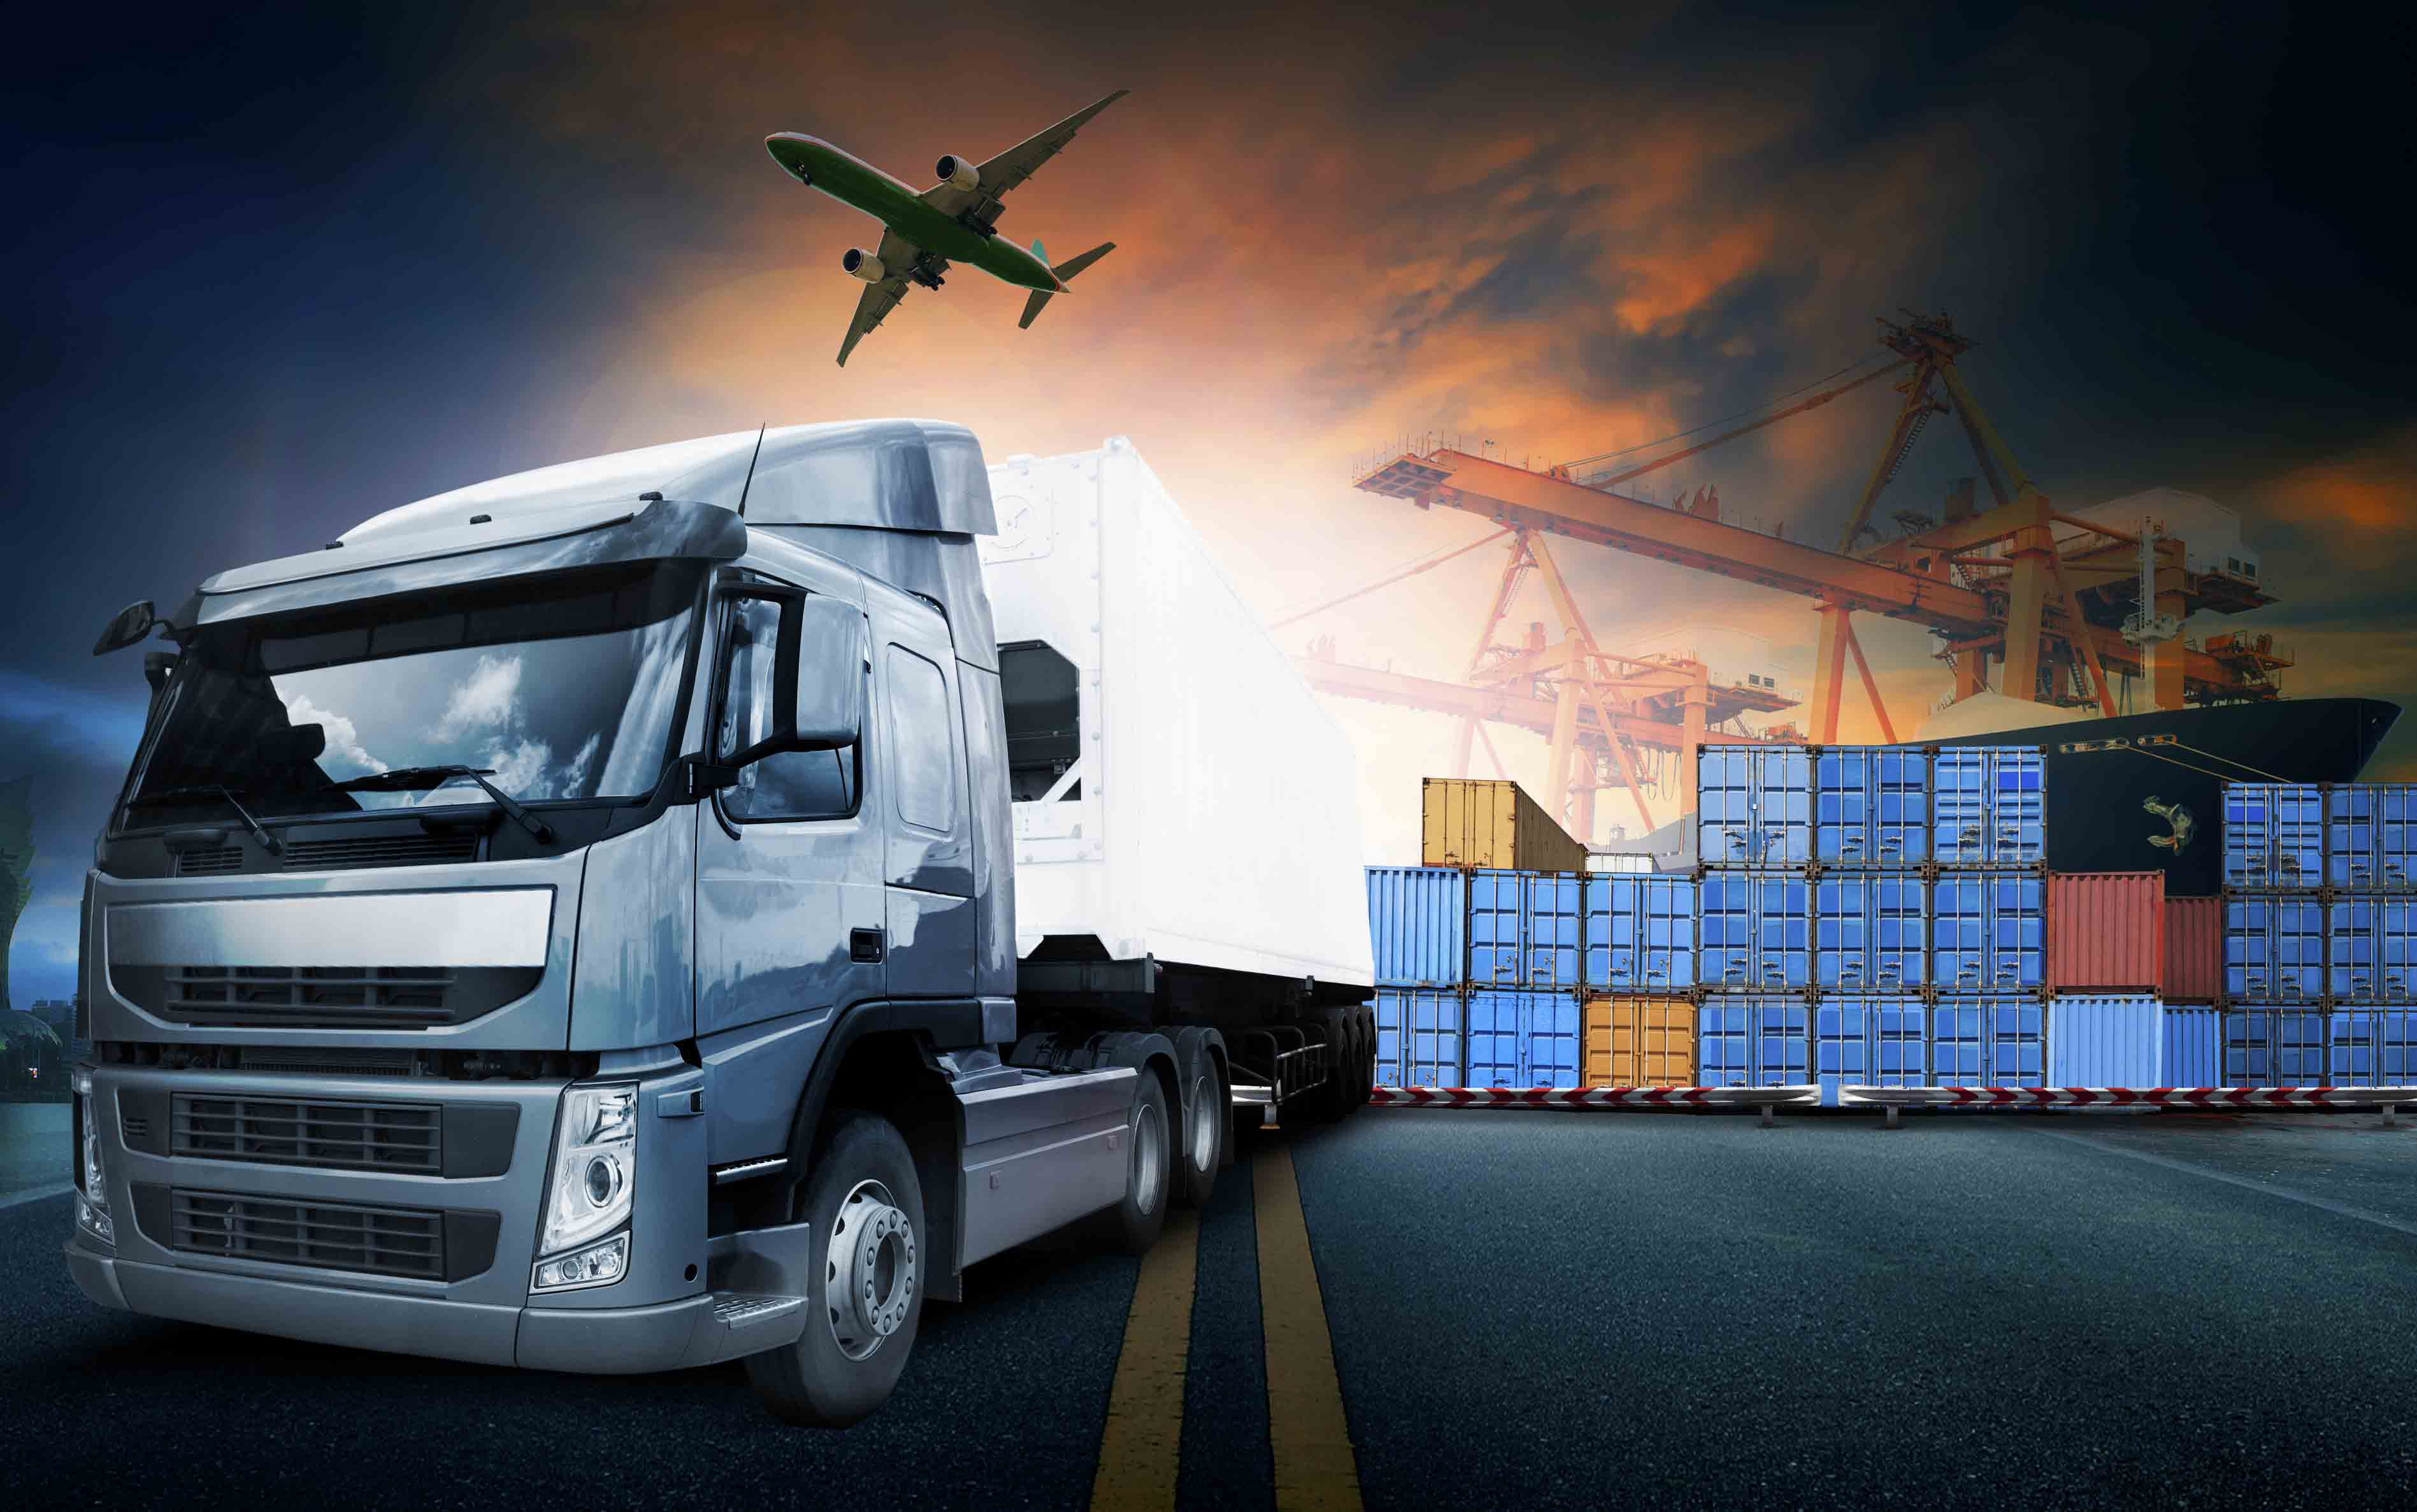 A Look Into 'Logistics in 2016'